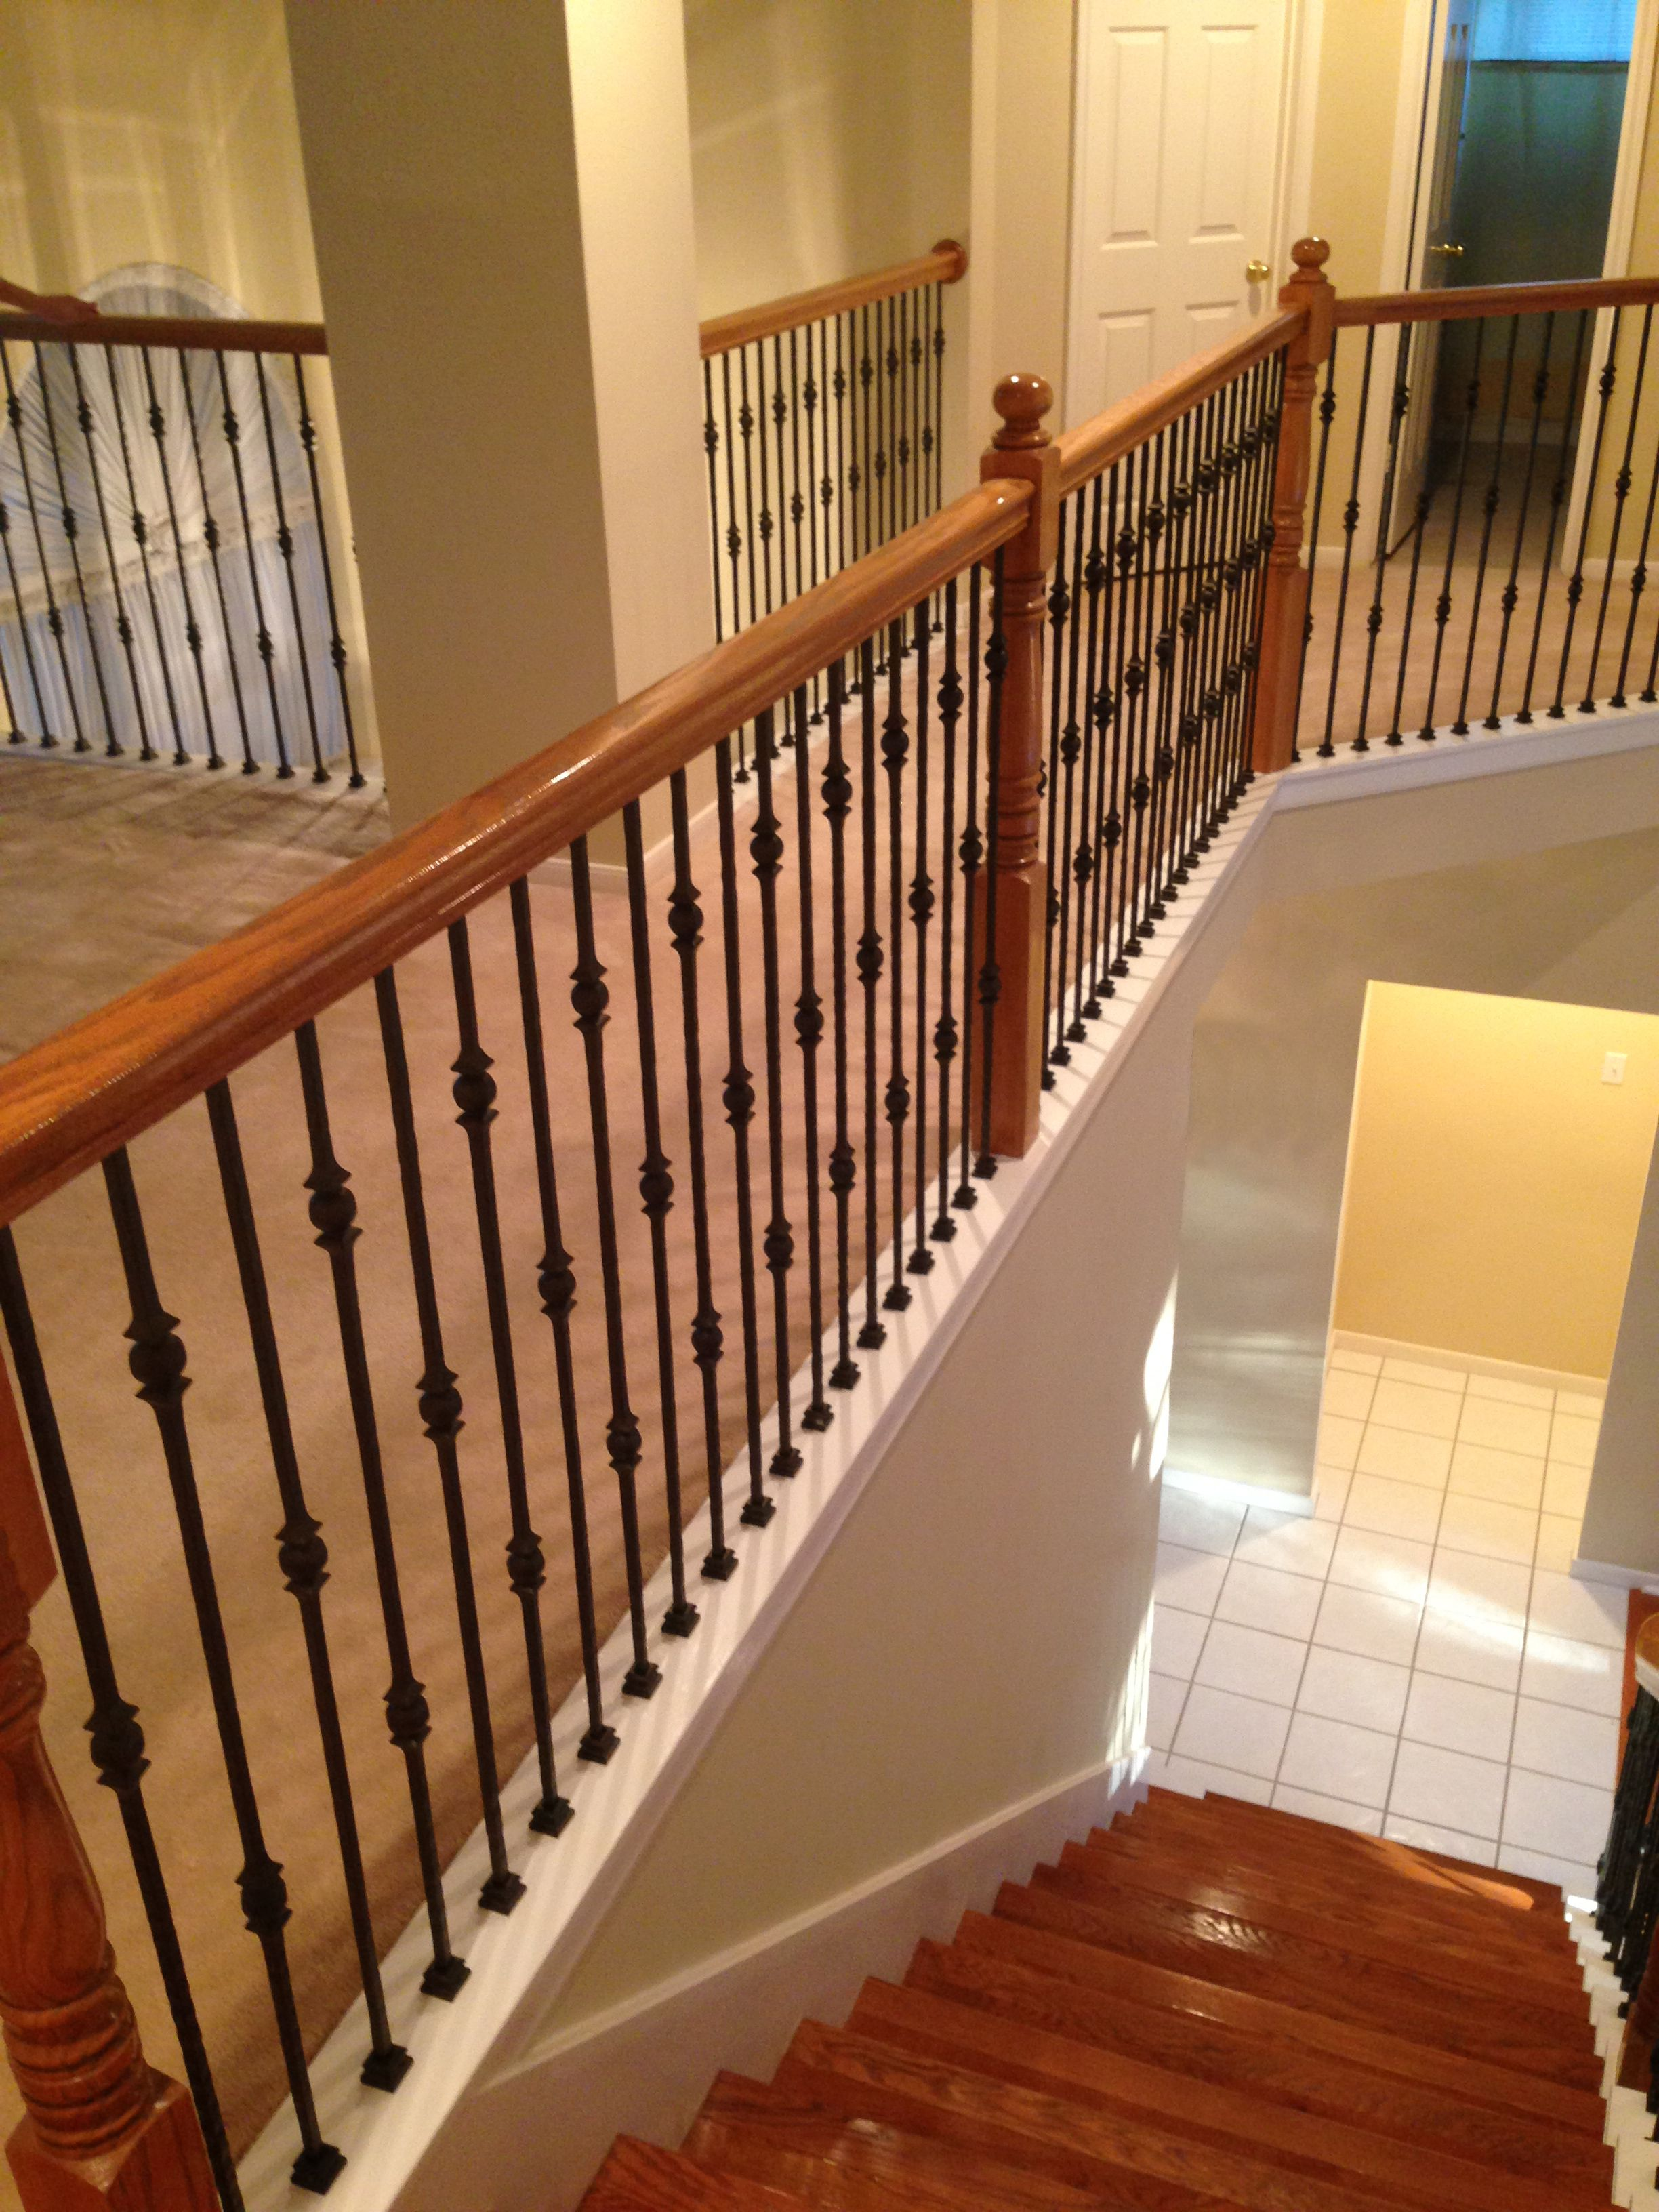 At the Goodwin s Houston home we did a full baluster change out and